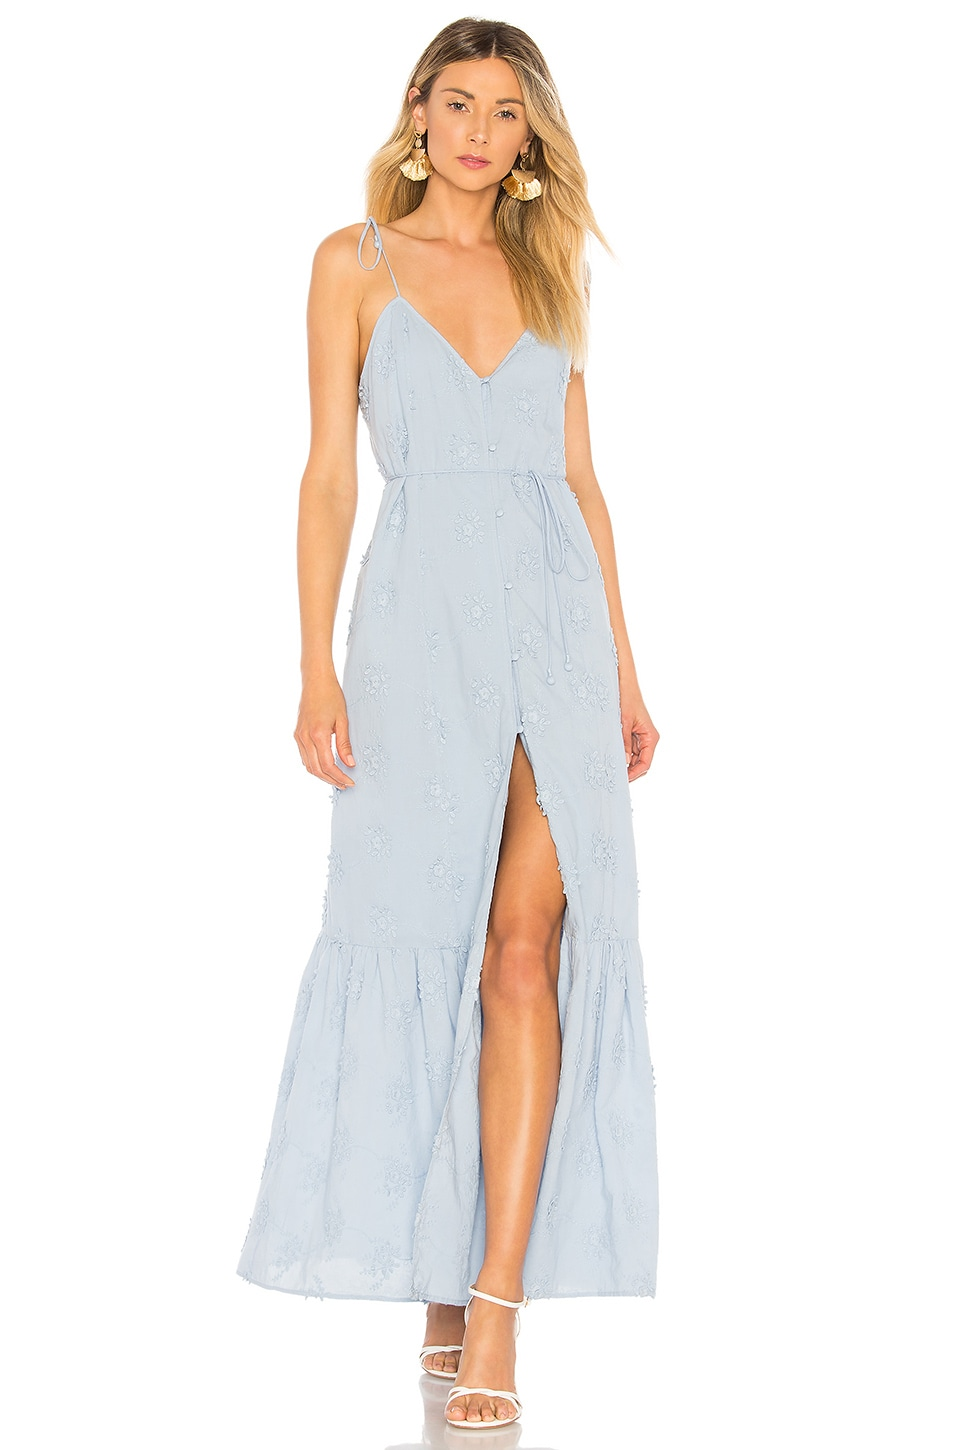 Tularosa Villa Dress in Light Blue